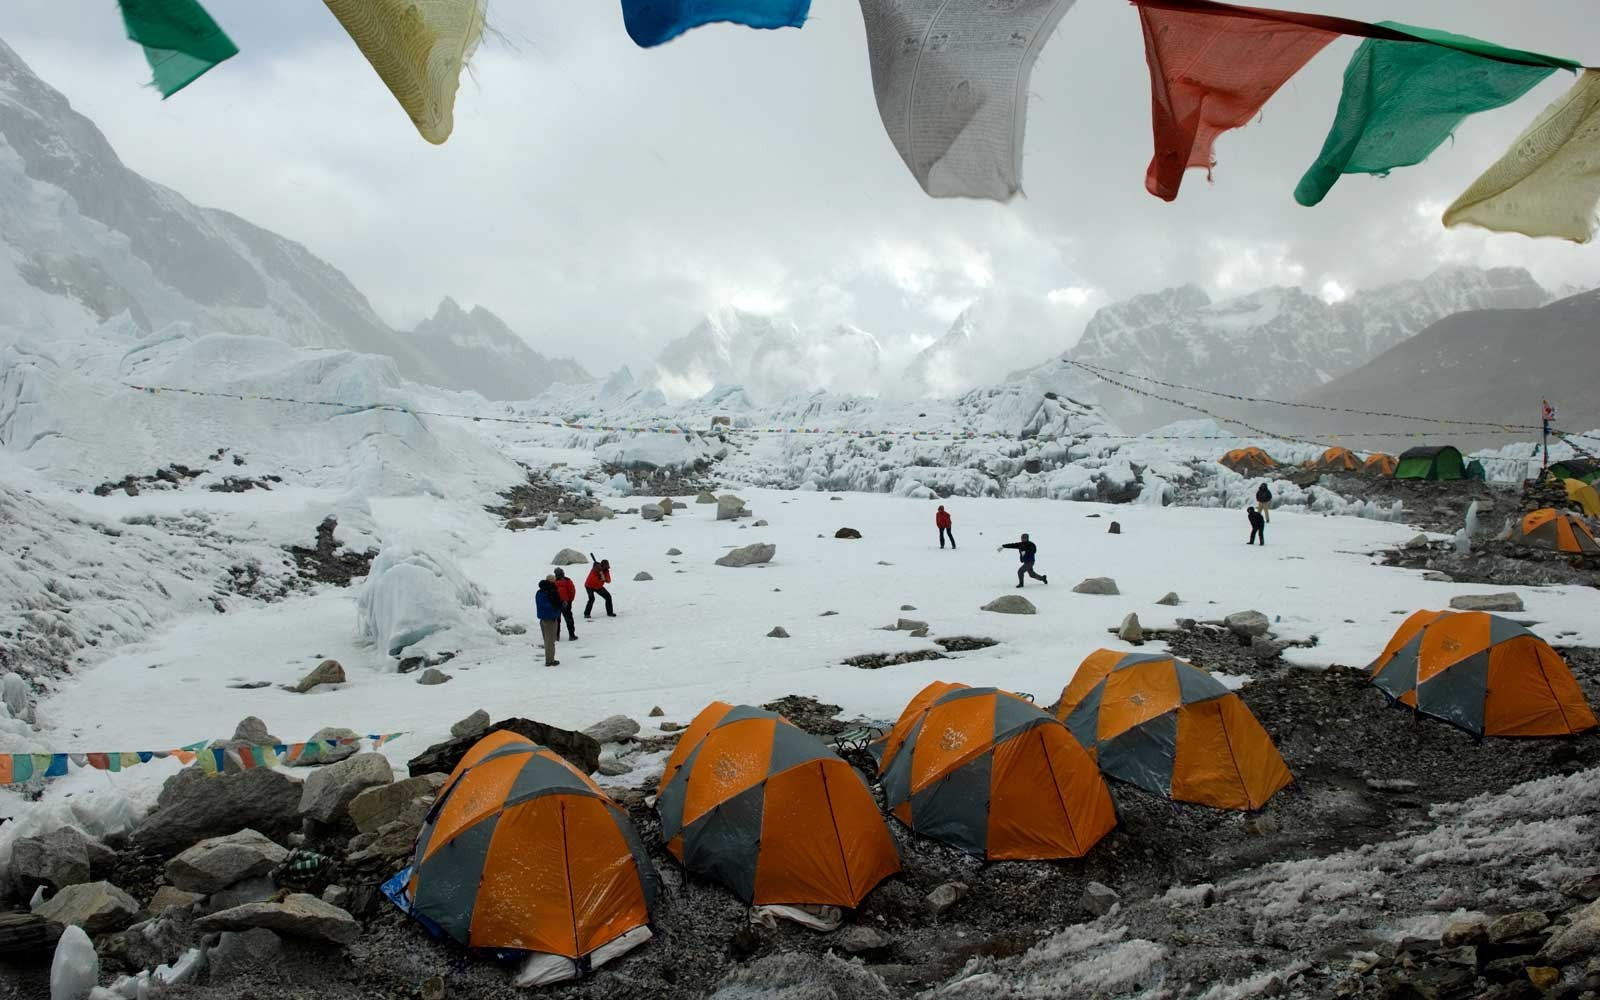 Climbers set to face new rules after deadly season